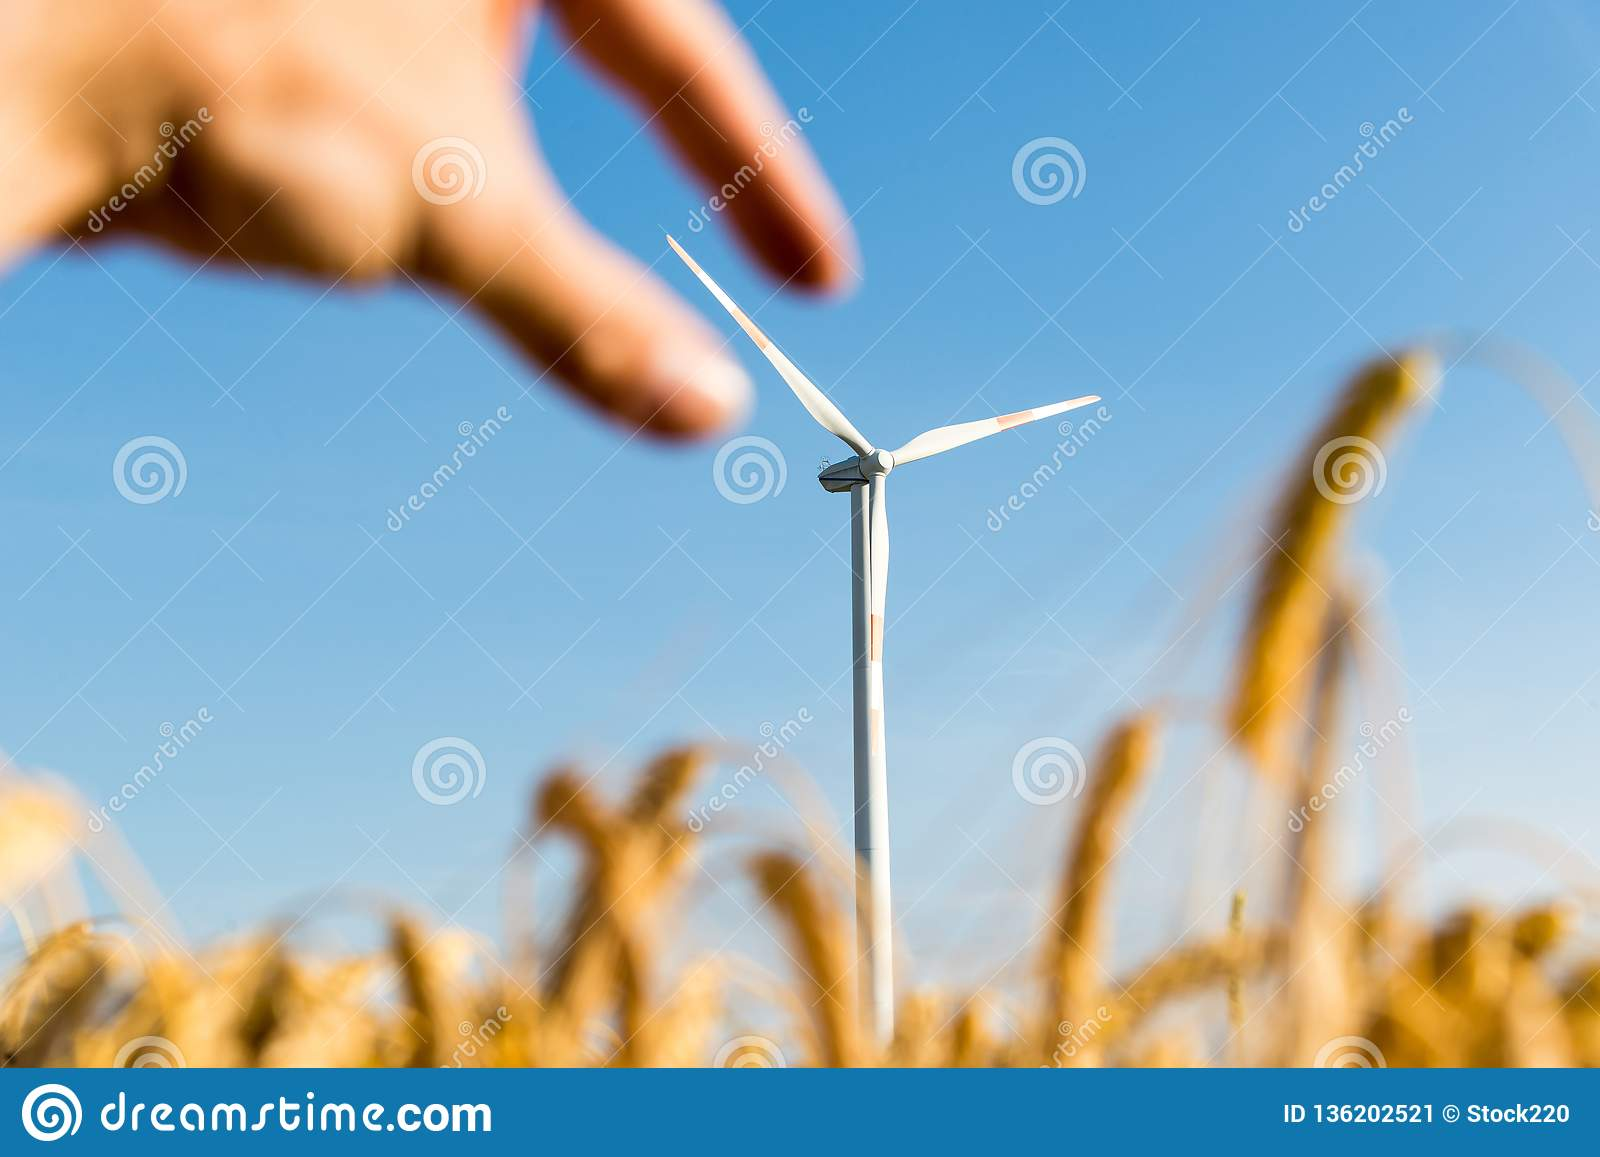 Hand grabbing the blade of a wind turbine